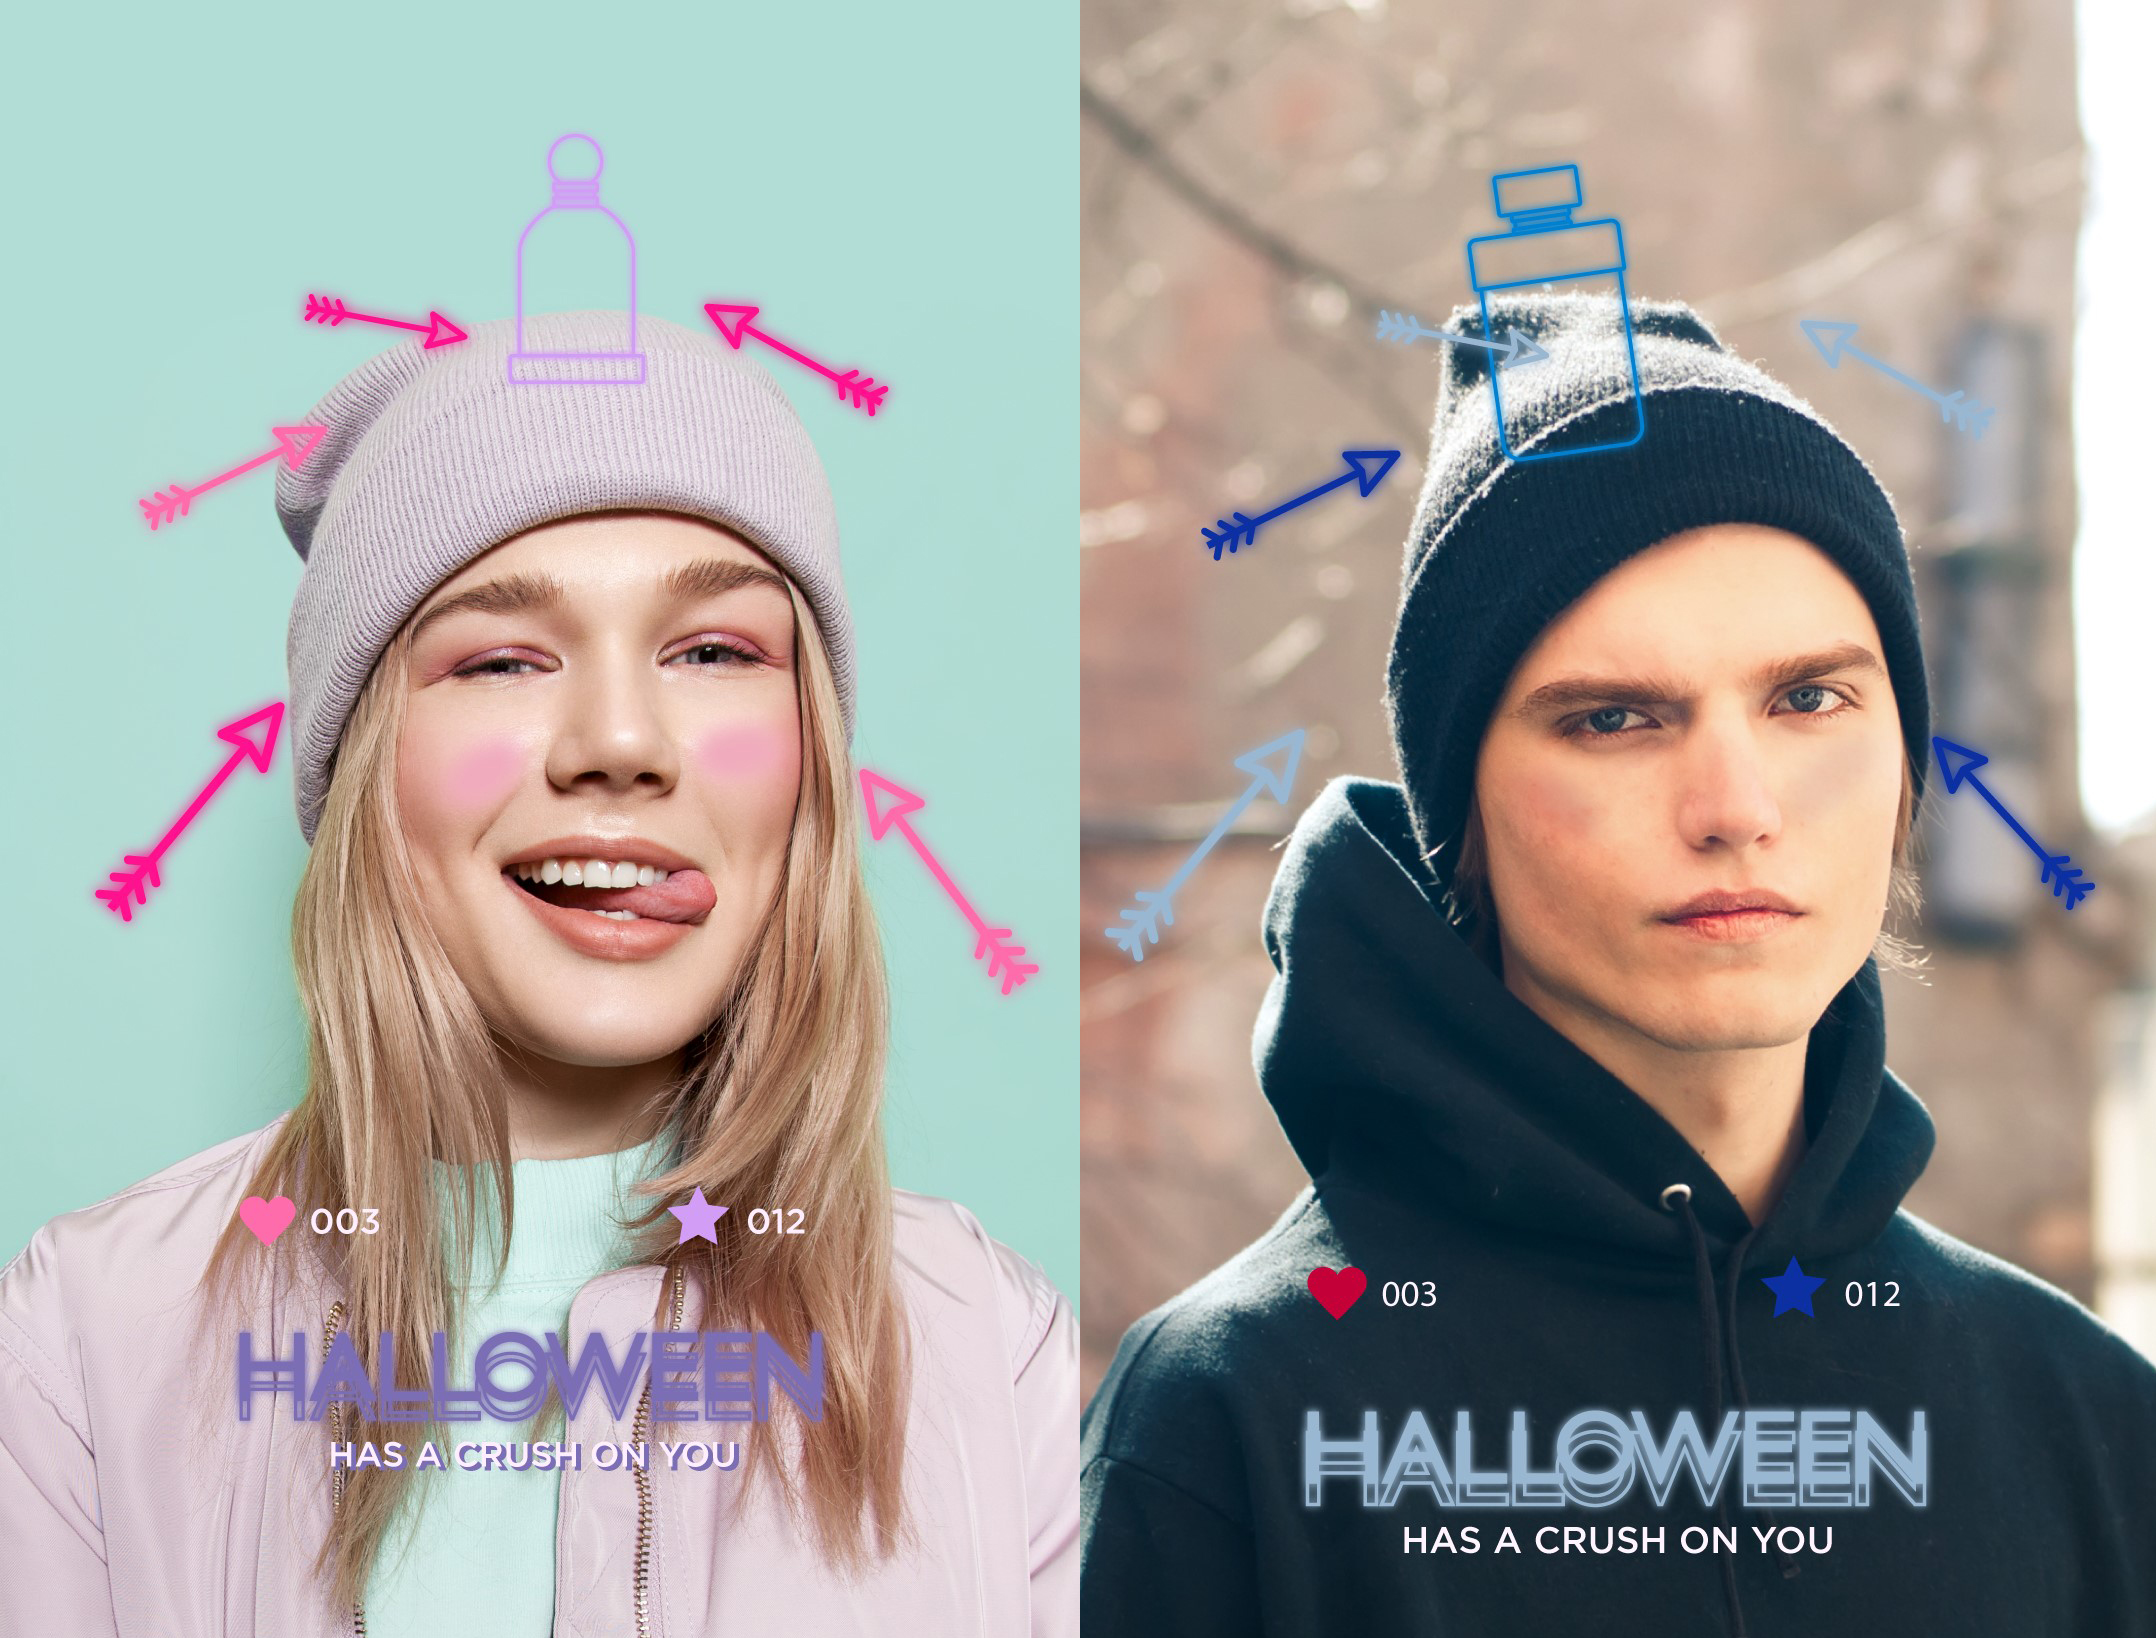 Halloween Perfumes launches its filter for Instagram